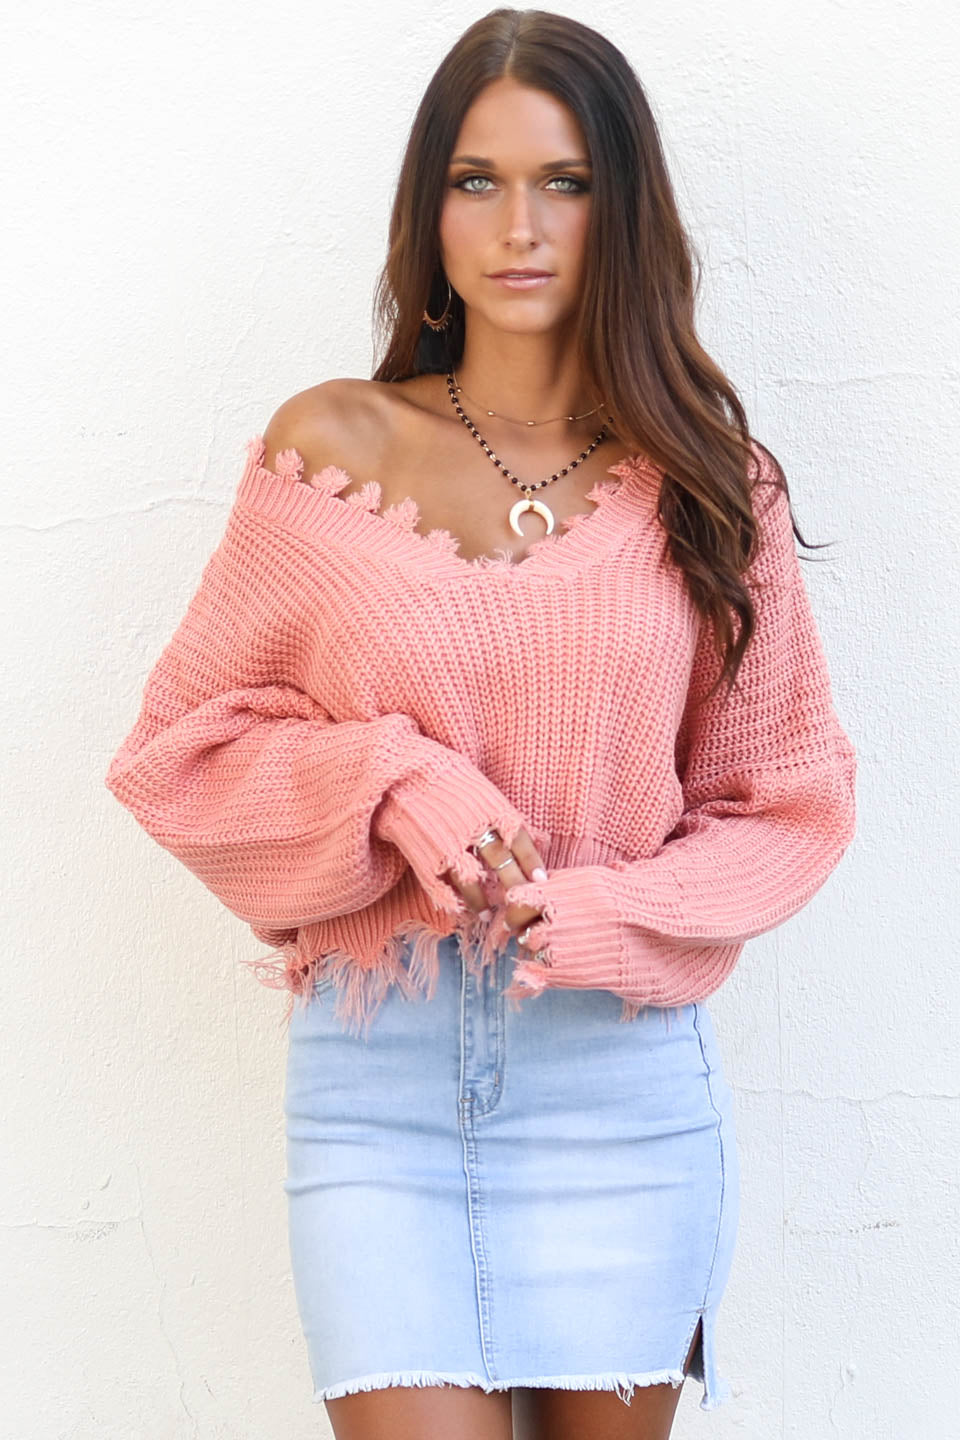 About Time Shredded Pink V-Neck Sweater